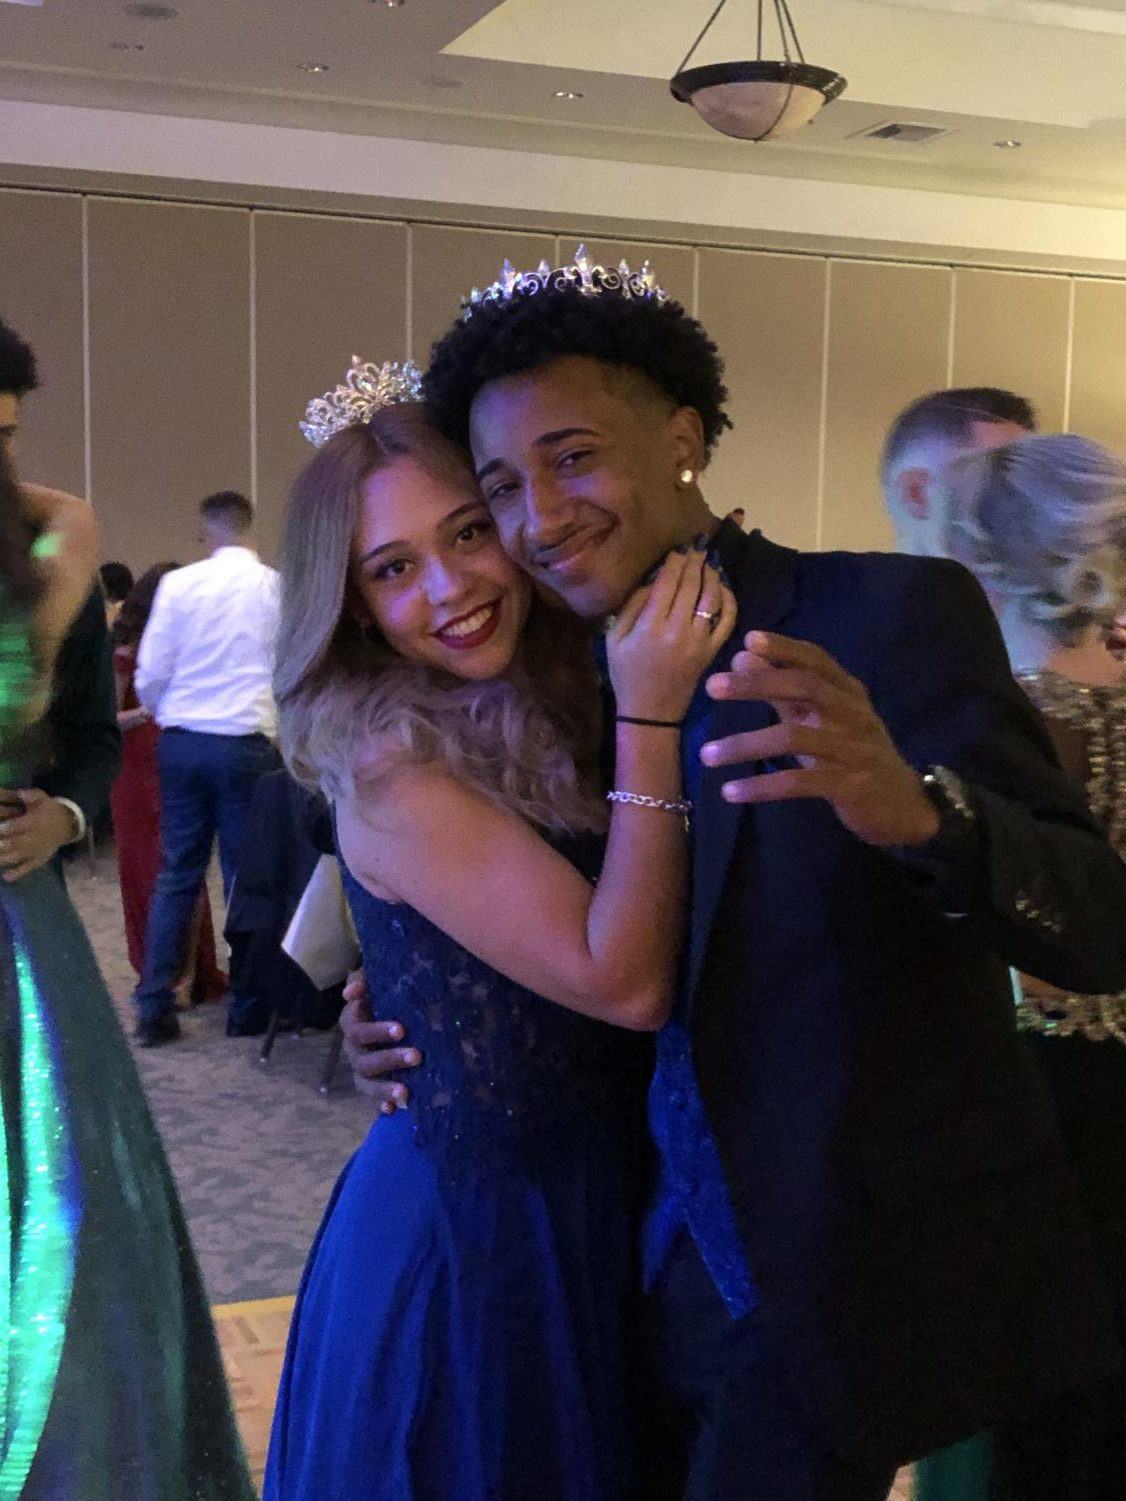 Prom King and Queen Keanne Hiraldo and Jessica Ortiz take the dance floor together one final time.